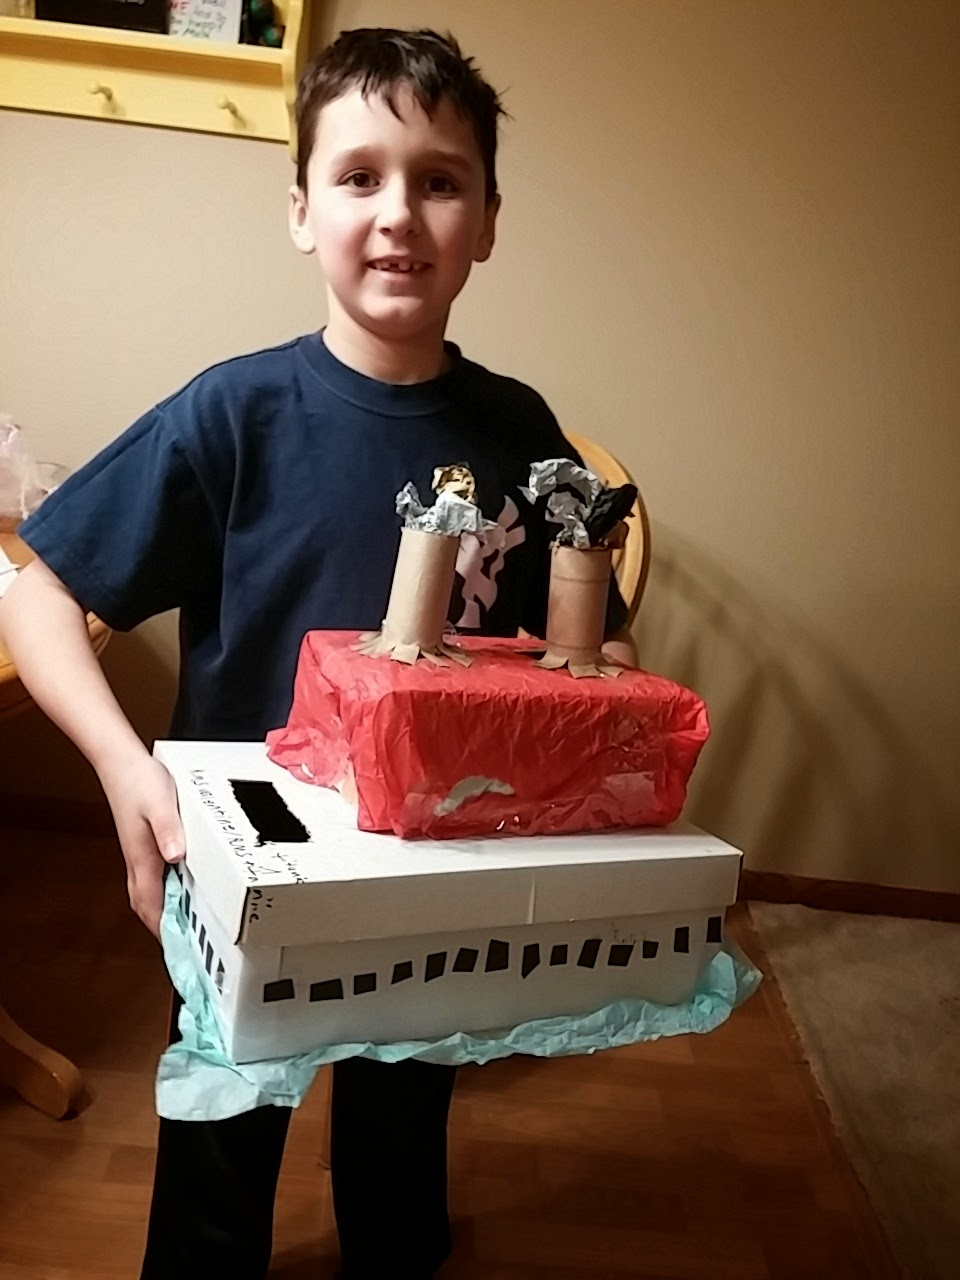 And Our Girl Chose To Make, A Toilet Valentine Box!